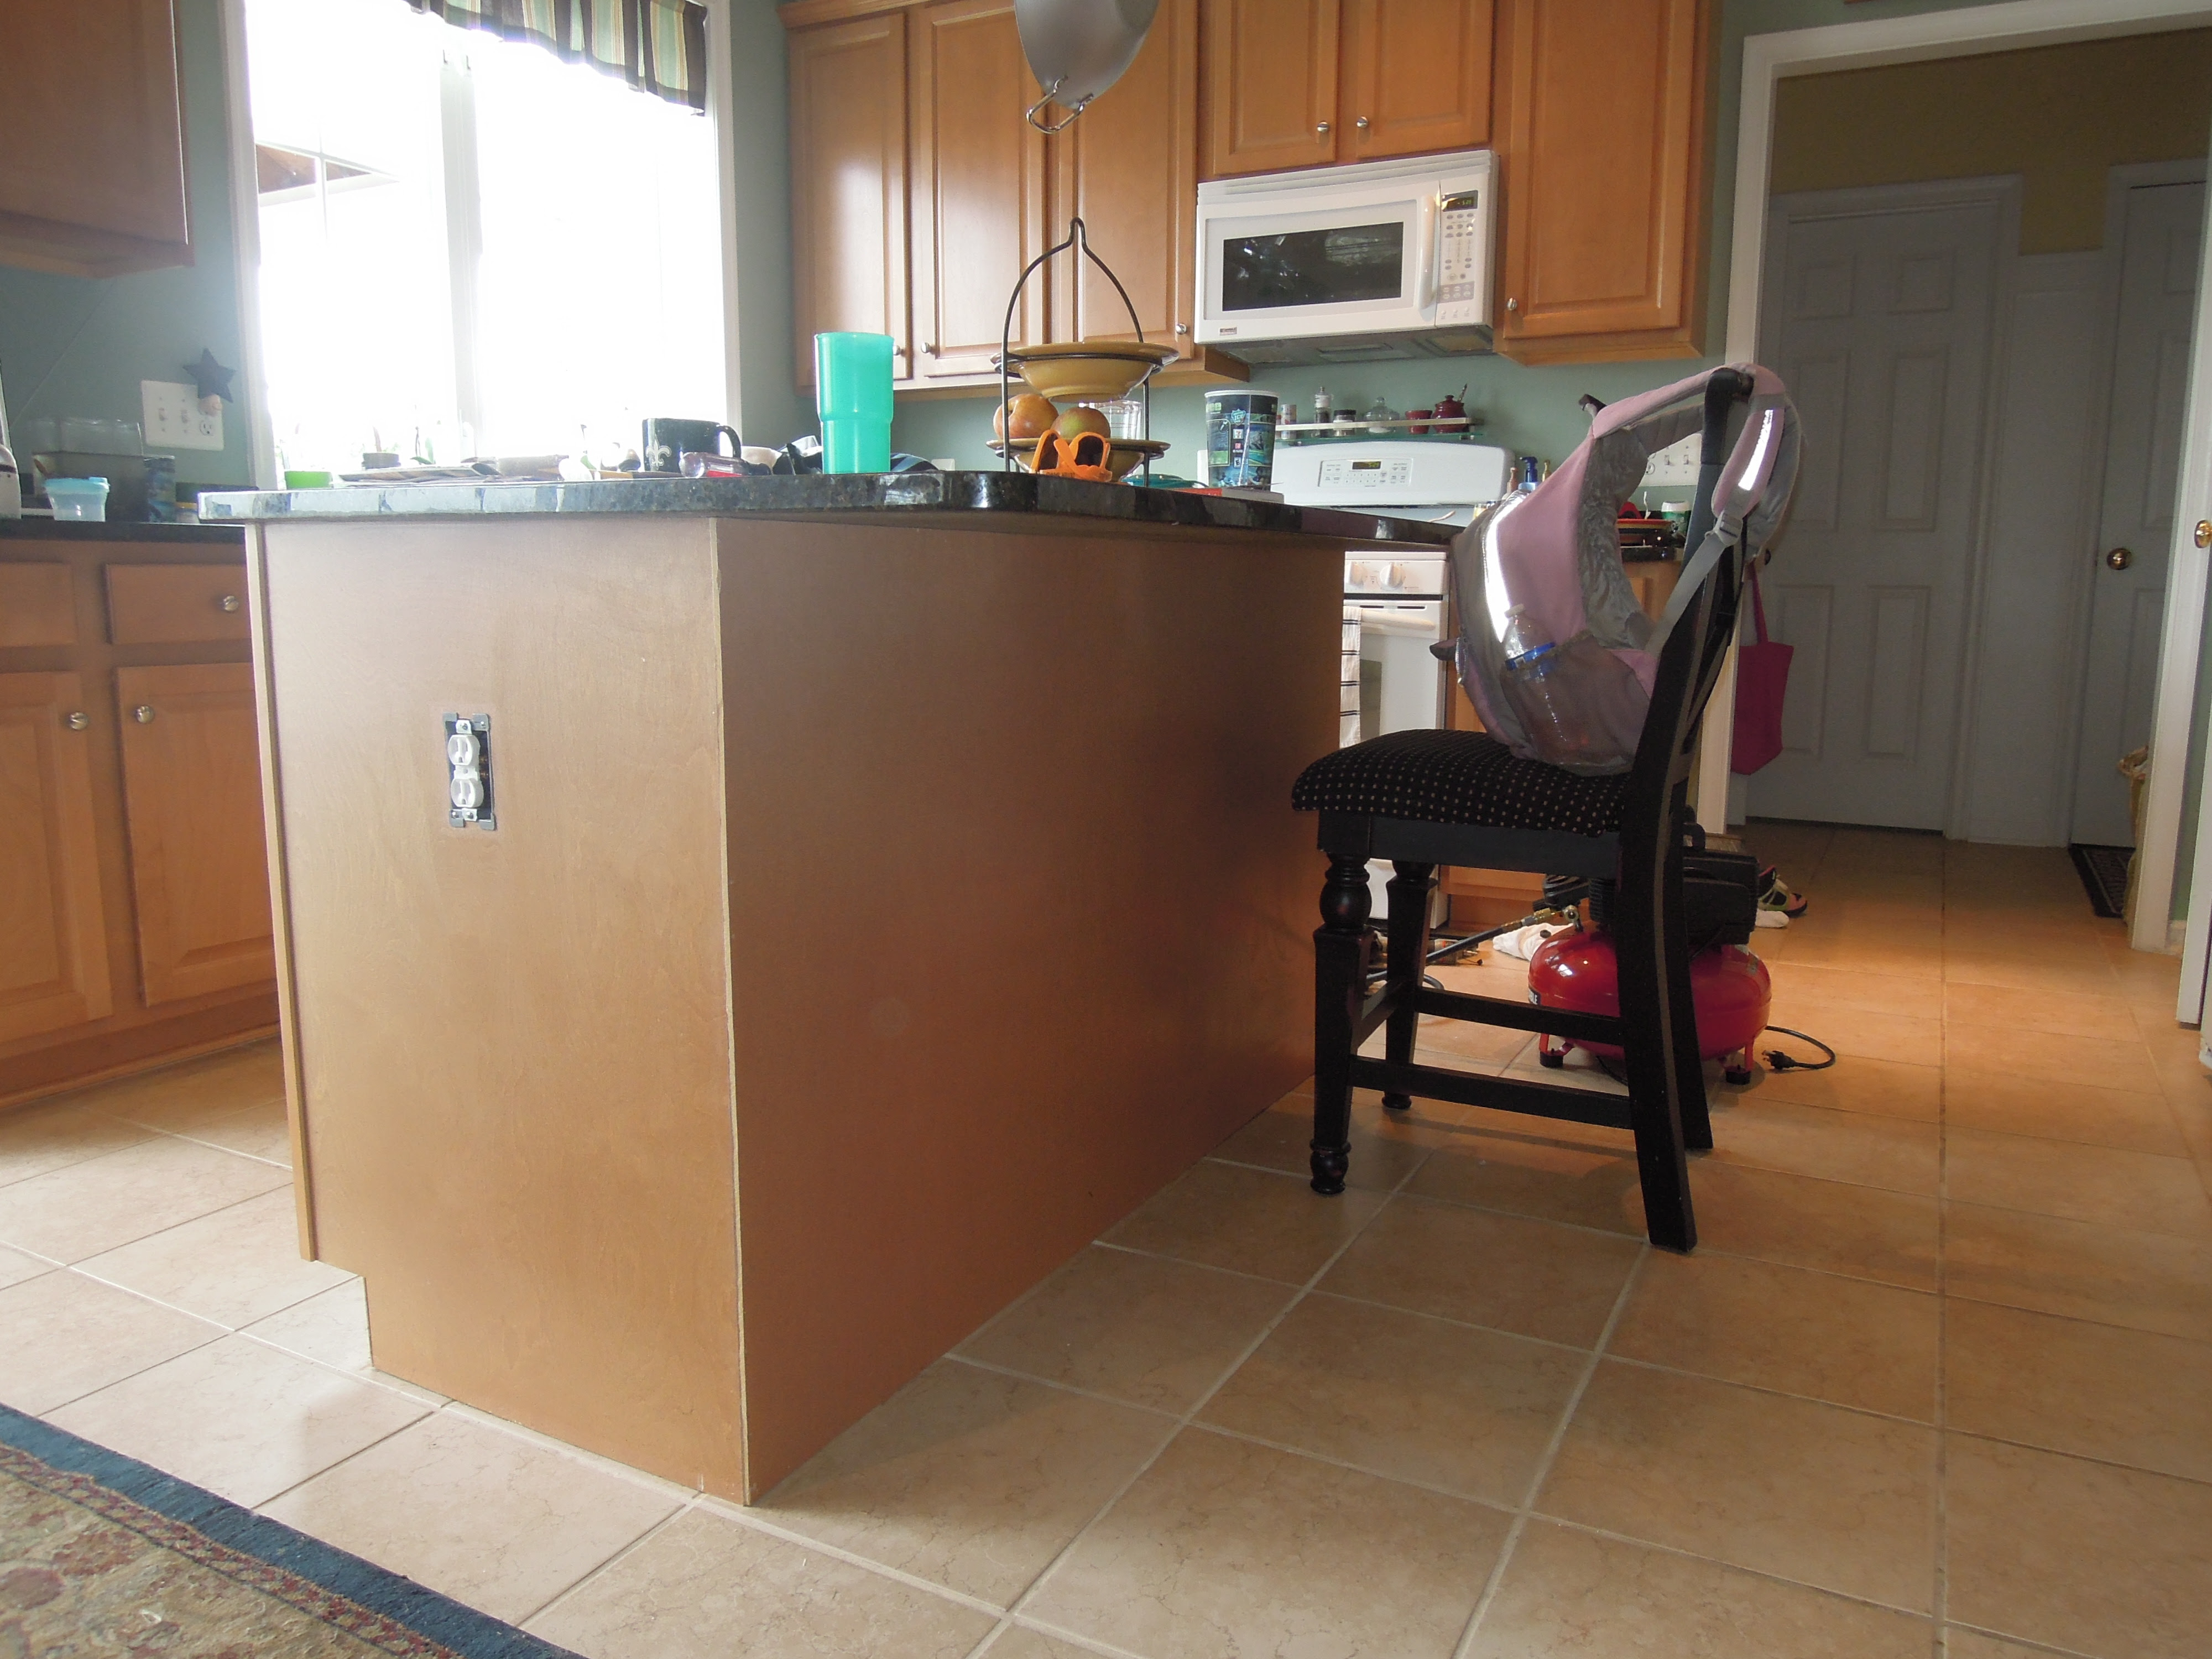 Pics of Kitchen Islands